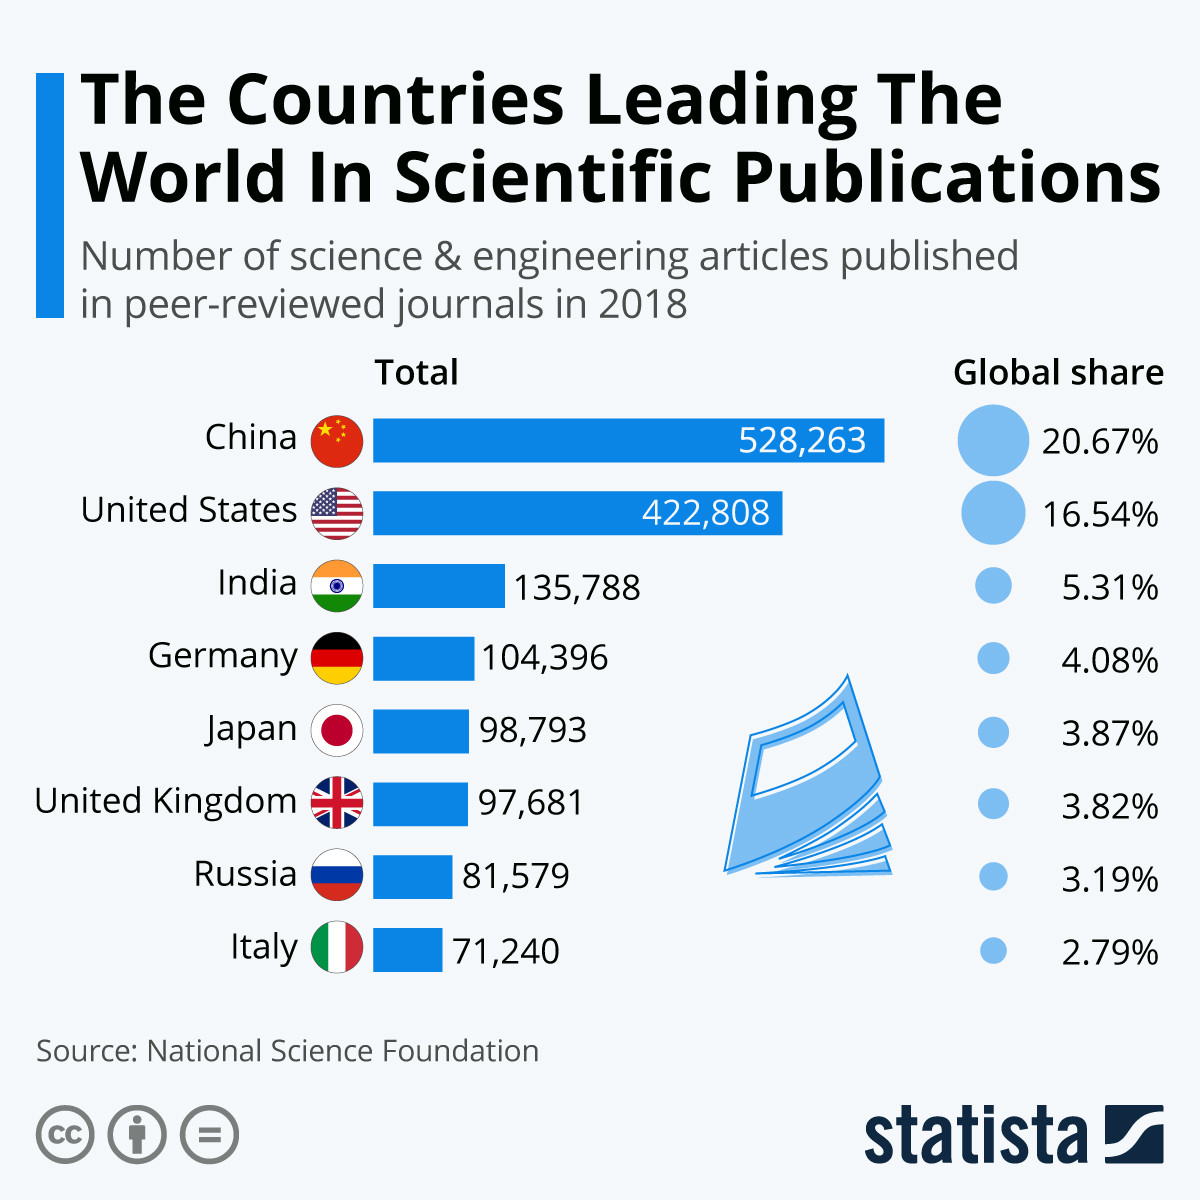 This chart shows the number of science & engineering articles published in peer reviewed journals in 2018.